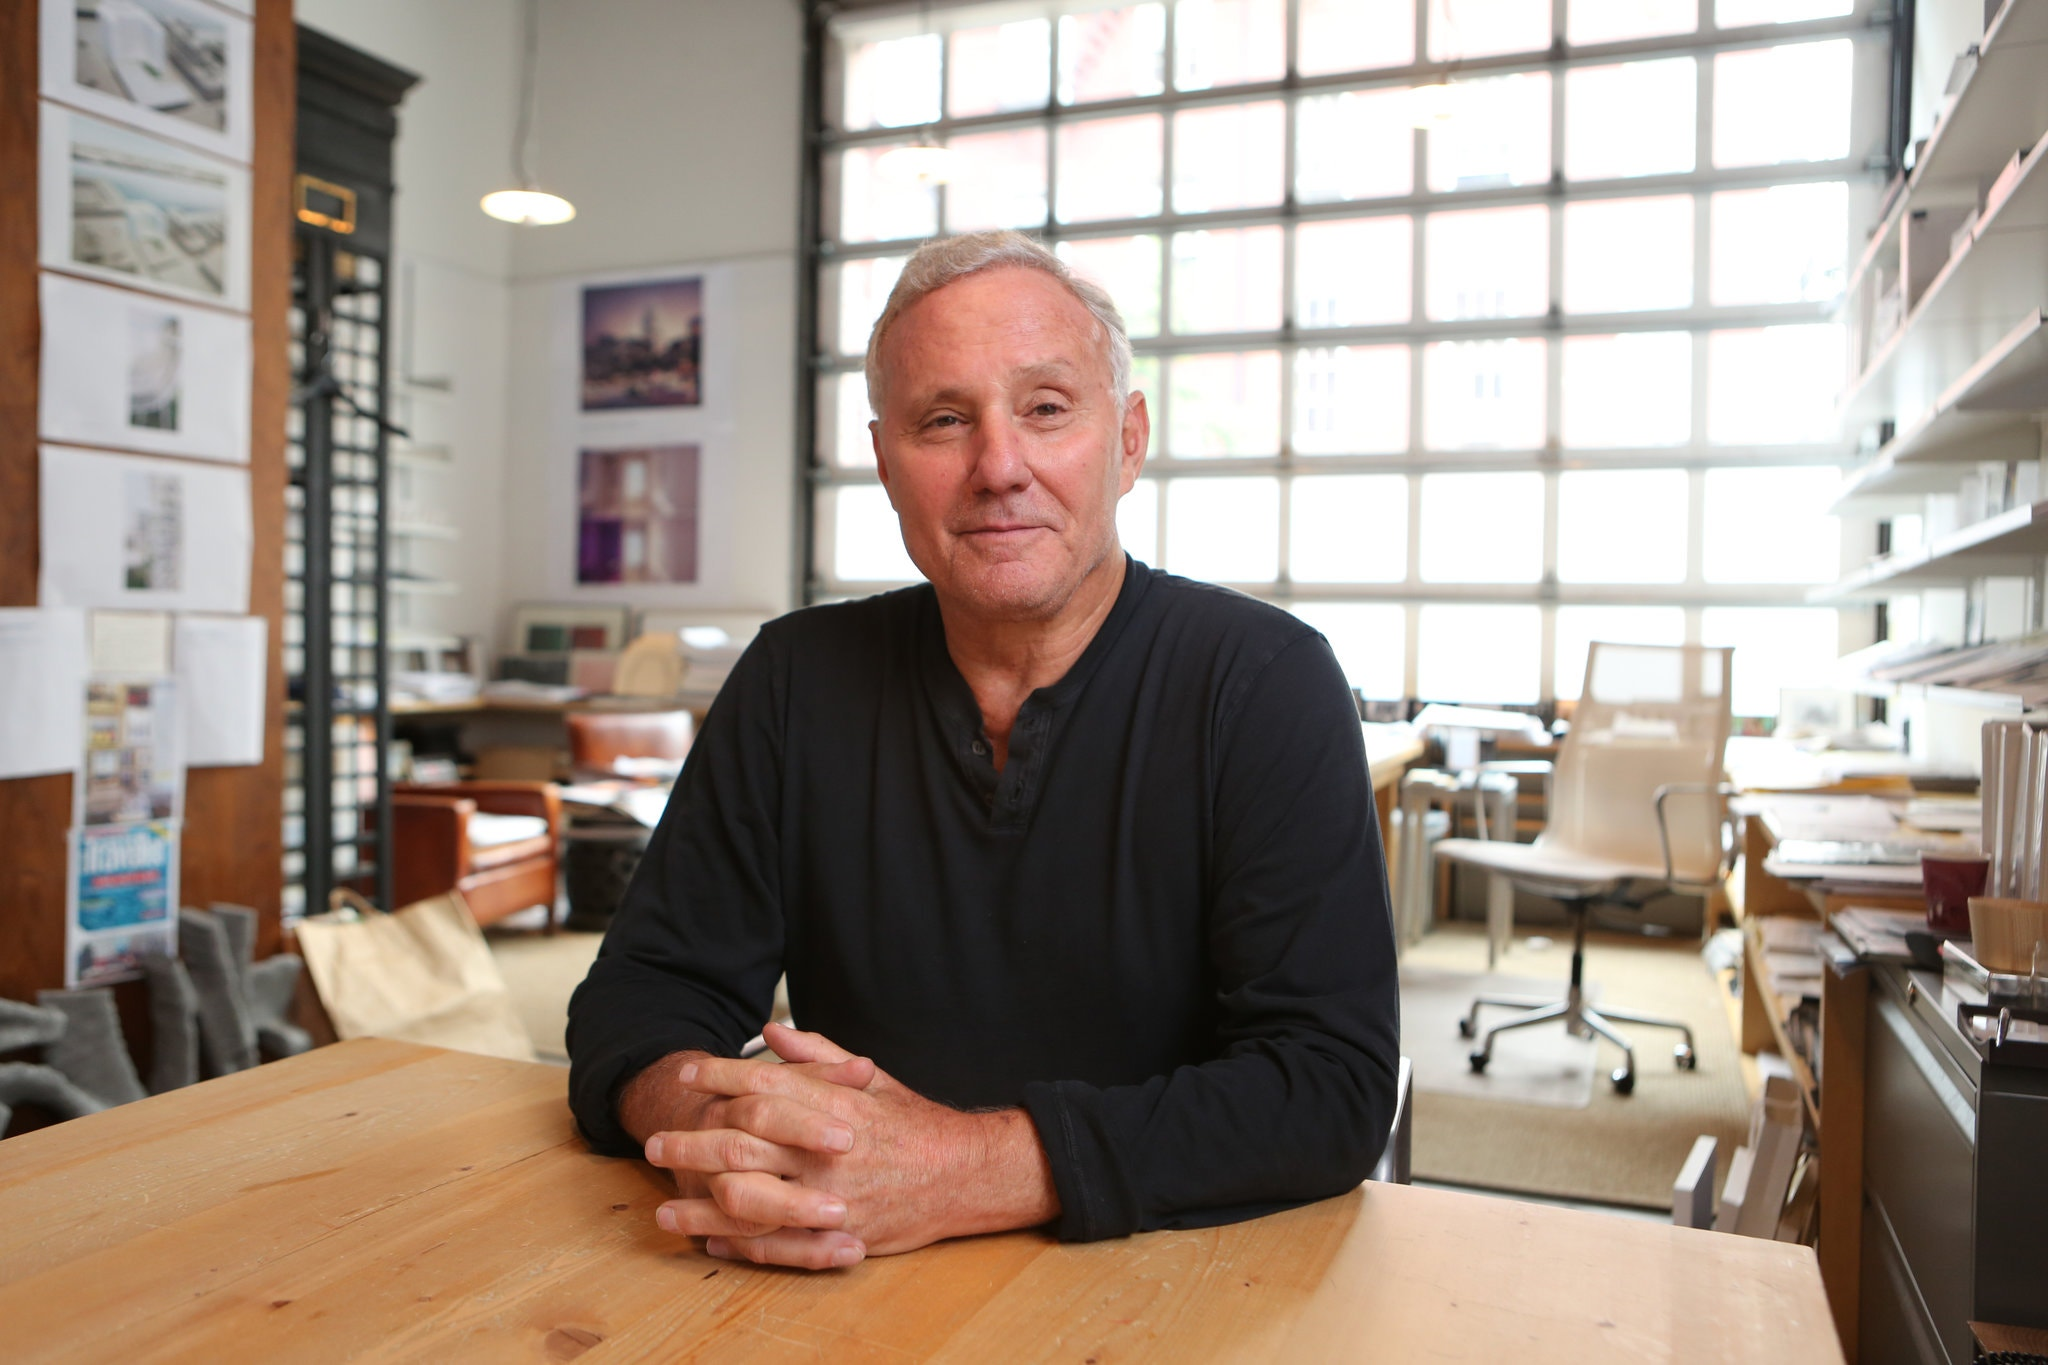 interview-with-hotelier-ian-schrager:-'a-business-is-a-living-and-breathing-organism'